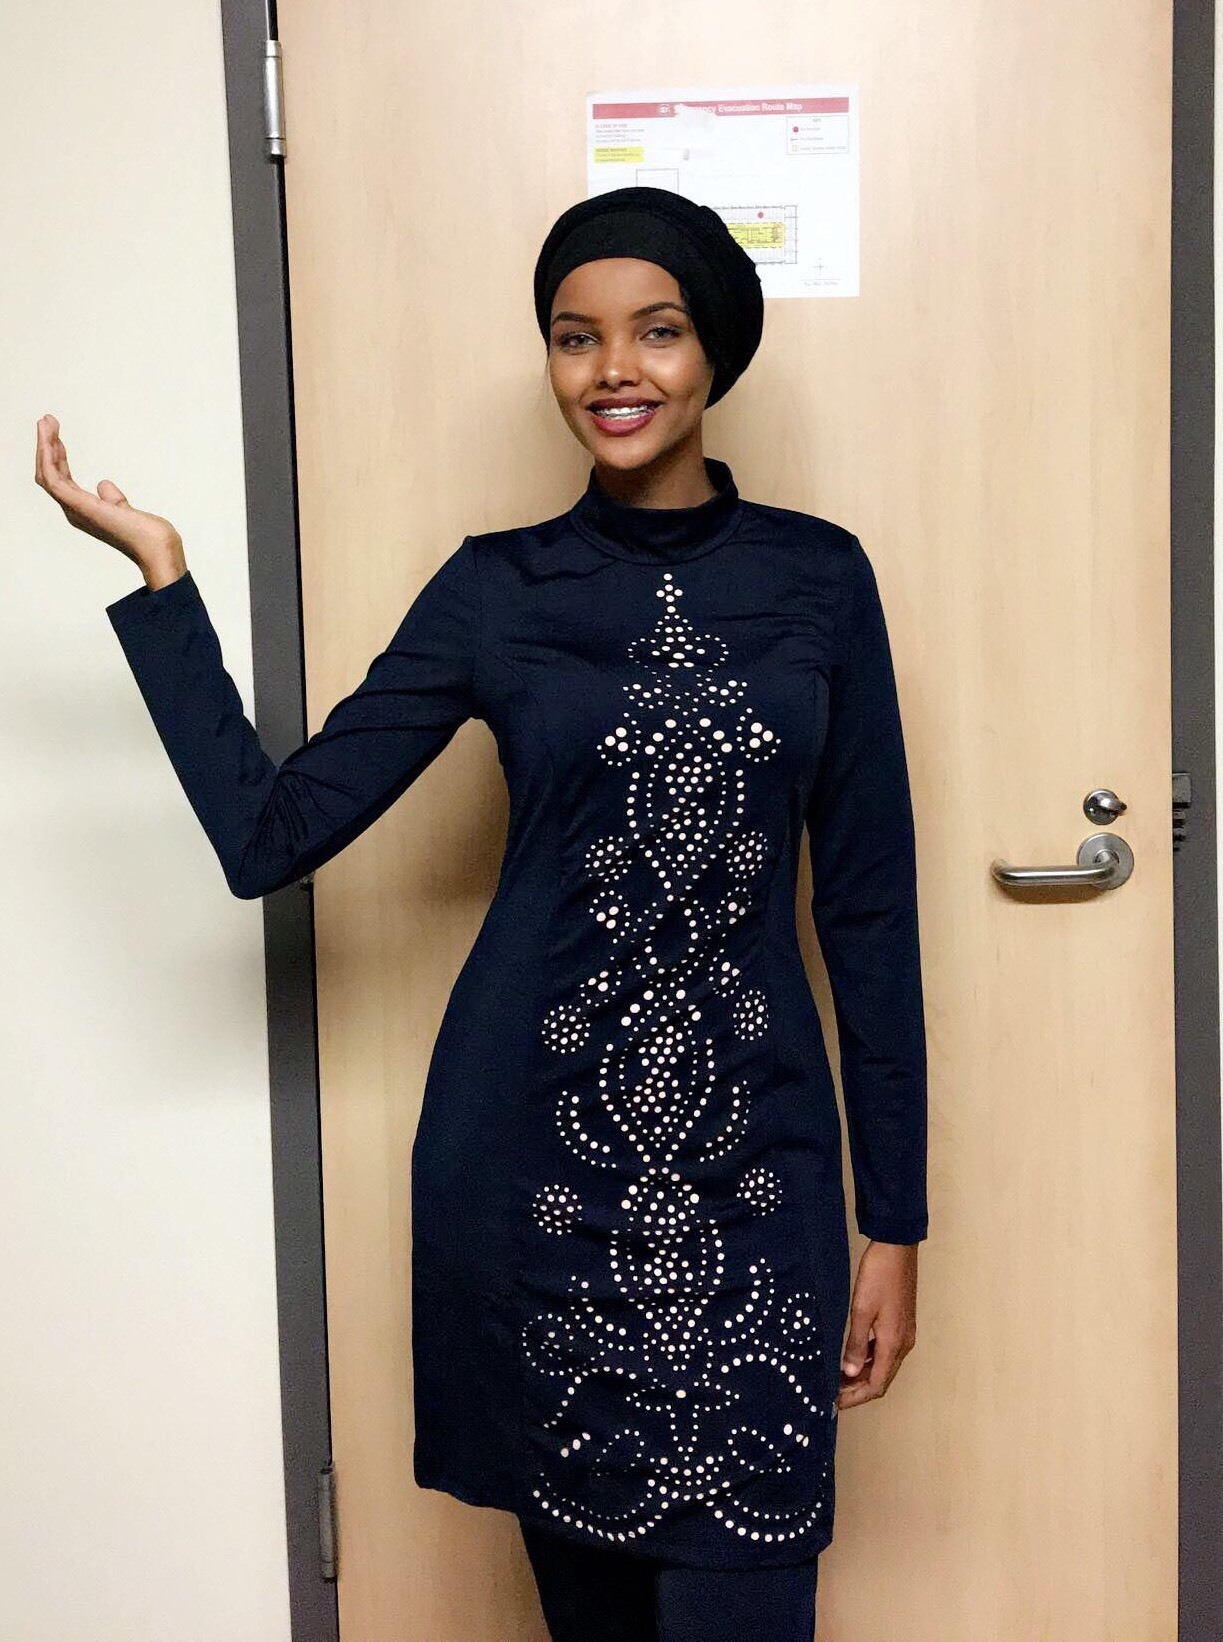 In this Nov. 11, 2016, photo provided by Alishba Kazmi, Halima Aden poses for a photo at St. Cloud State University in St. Cloud, Minn.